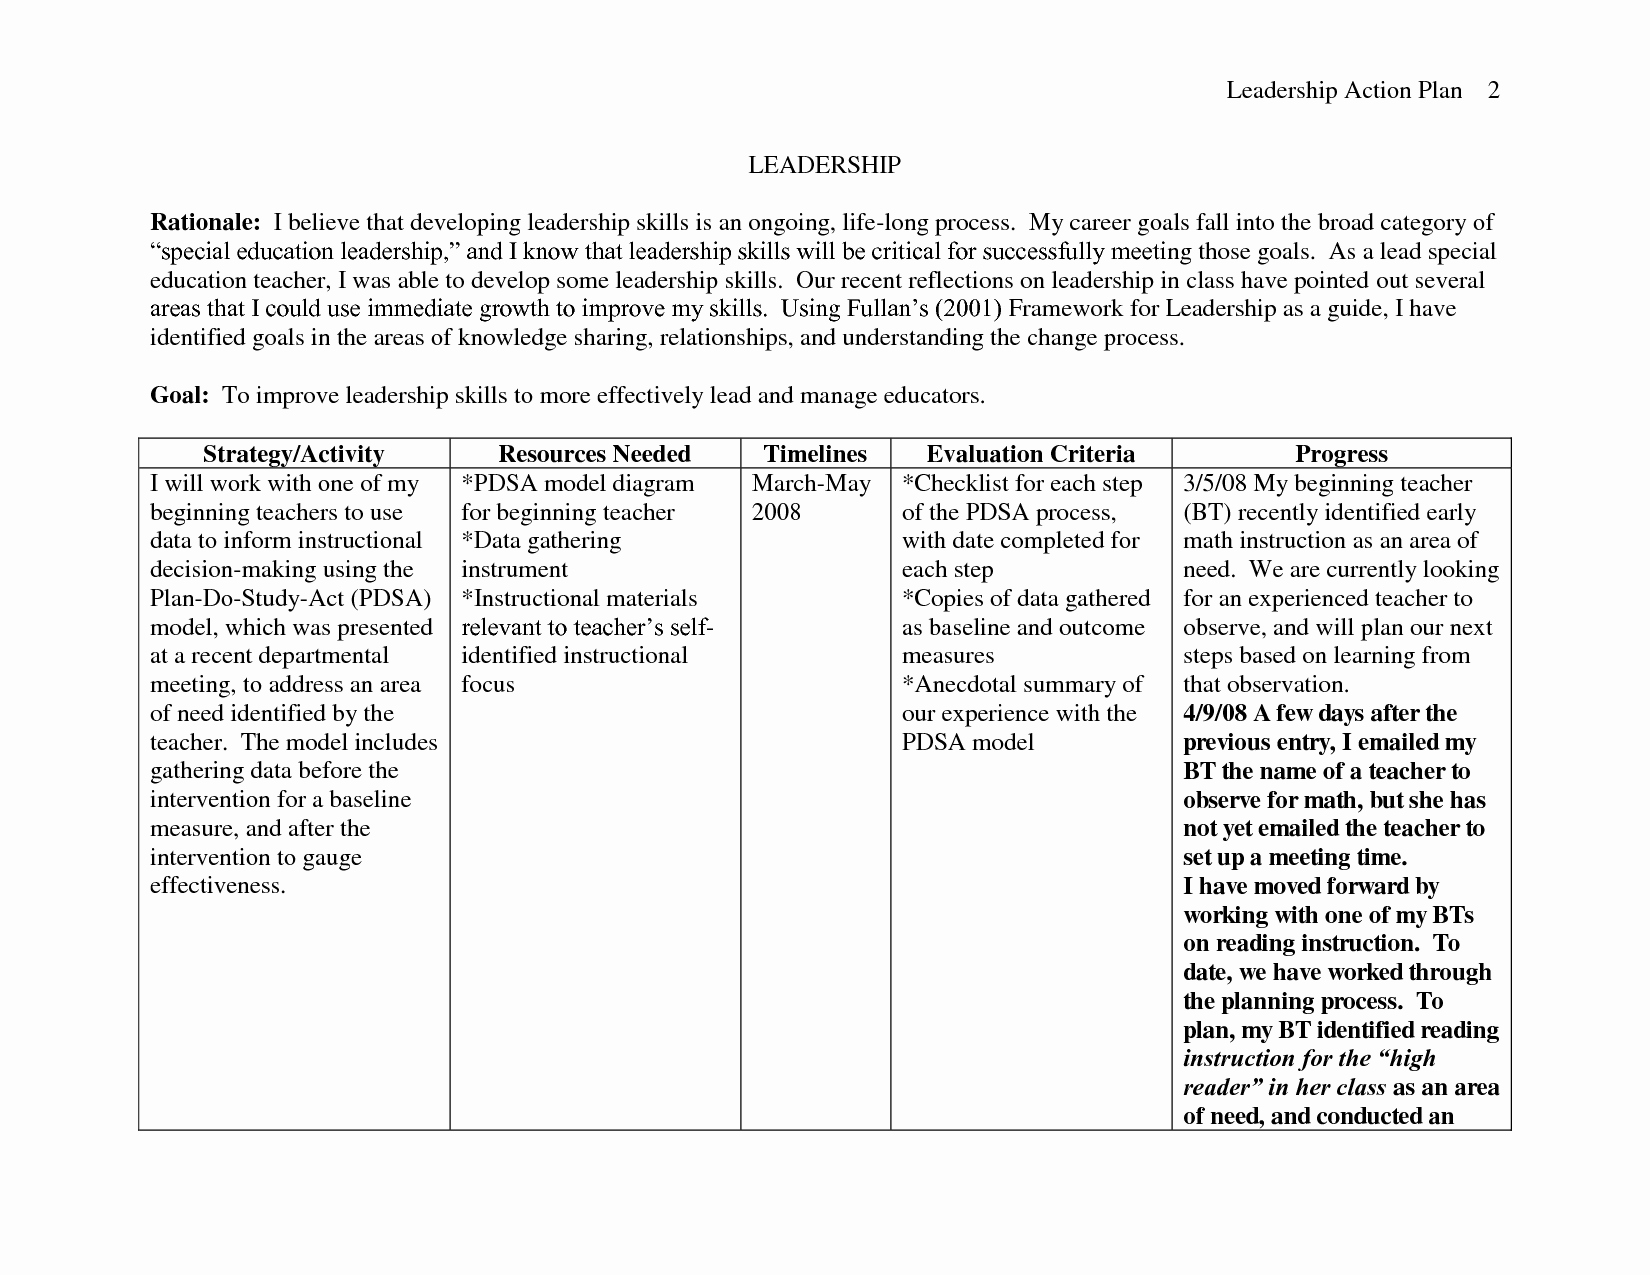 Personal Action Plan Template Awesome Personal Leadership Action Plan Sample